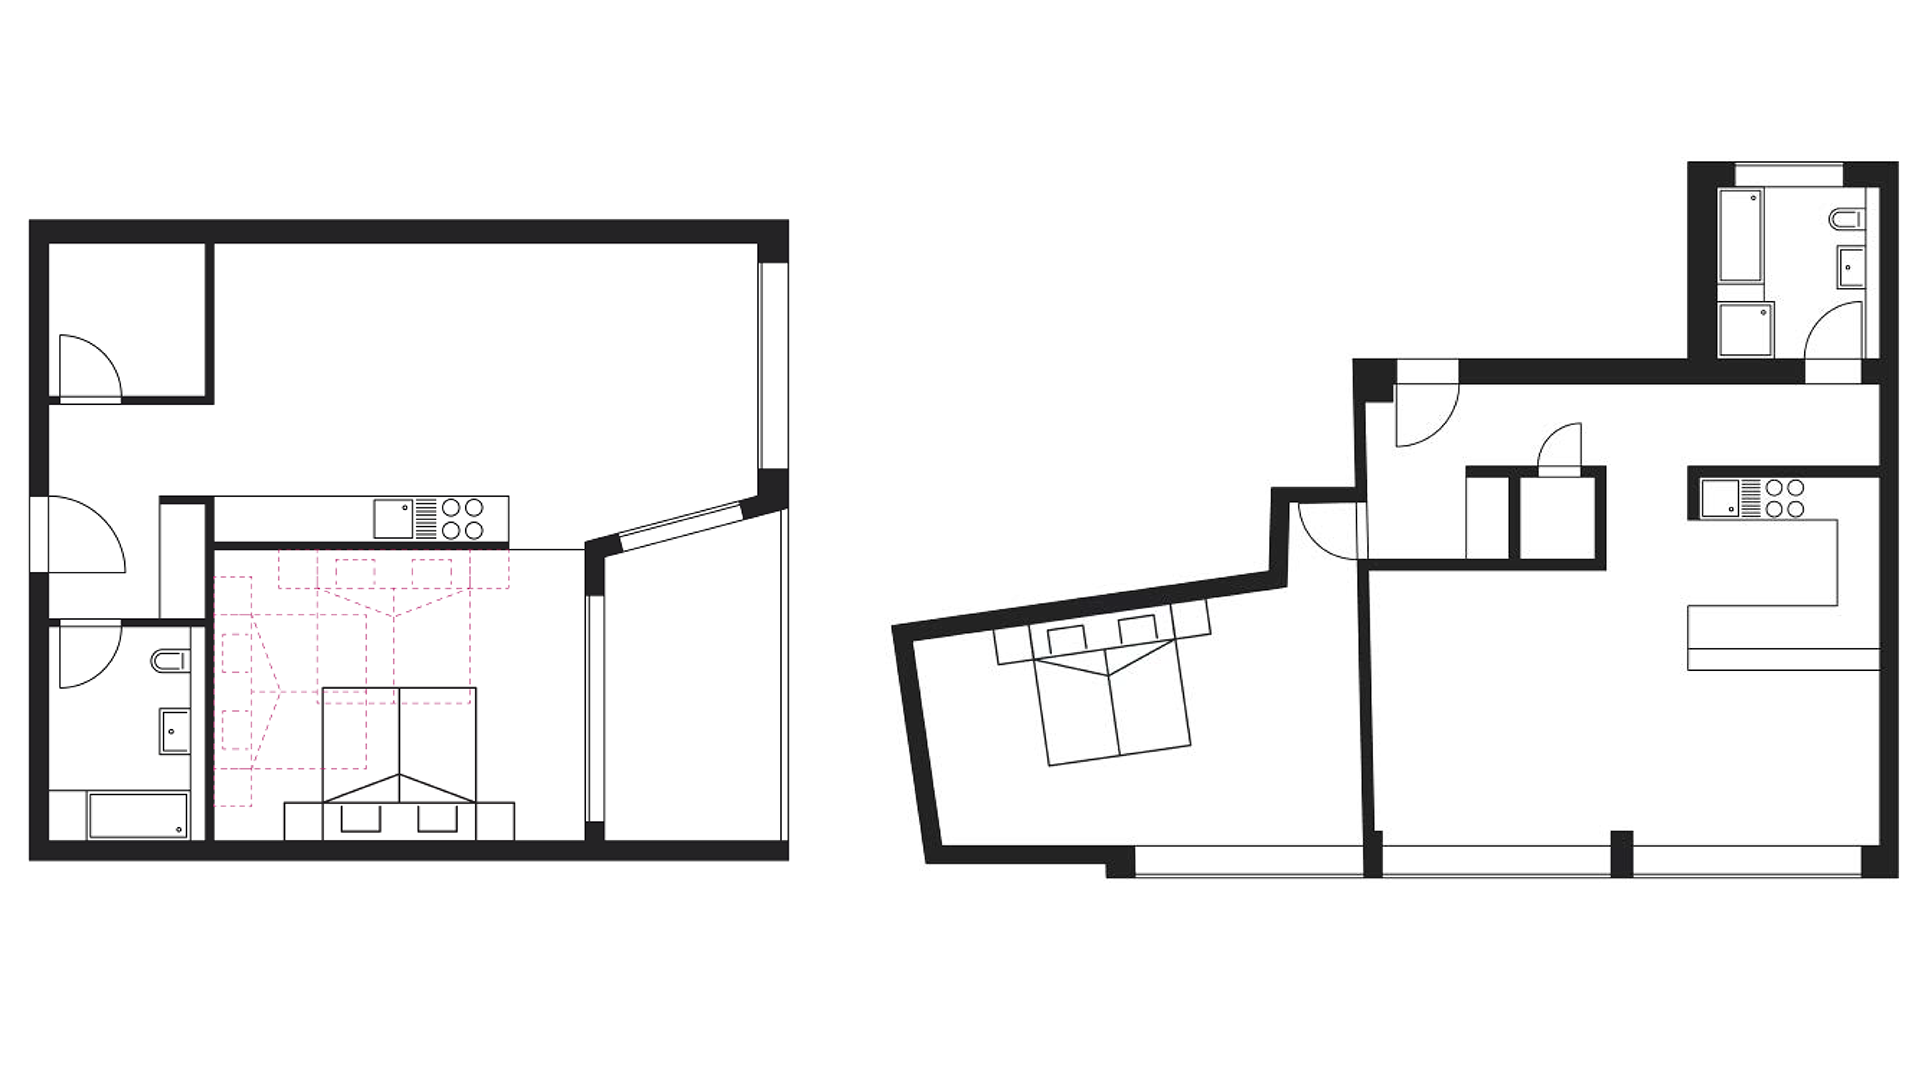 The floor plan of the bedroom influences furnishing options